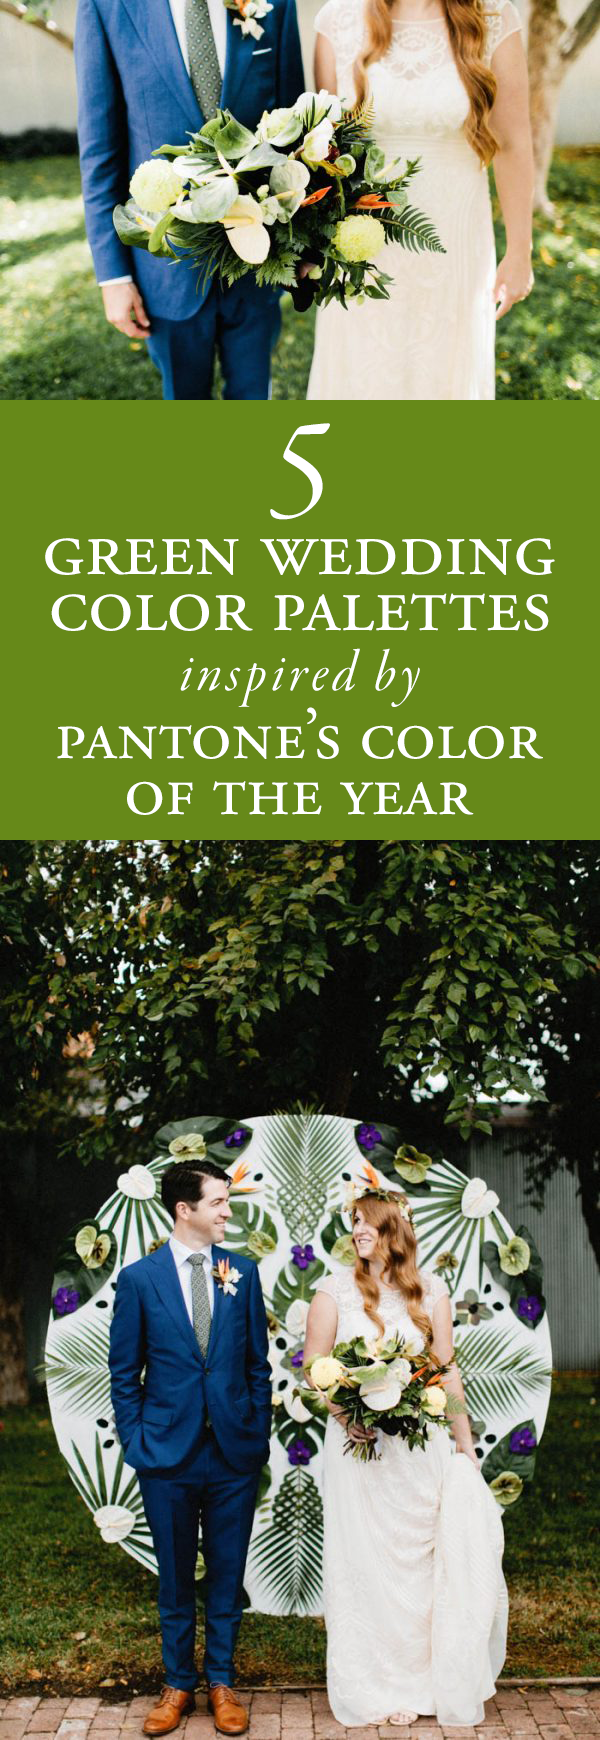 5 Green Wedding Palettes Inspired by Pantone\'s Color of the Year ...